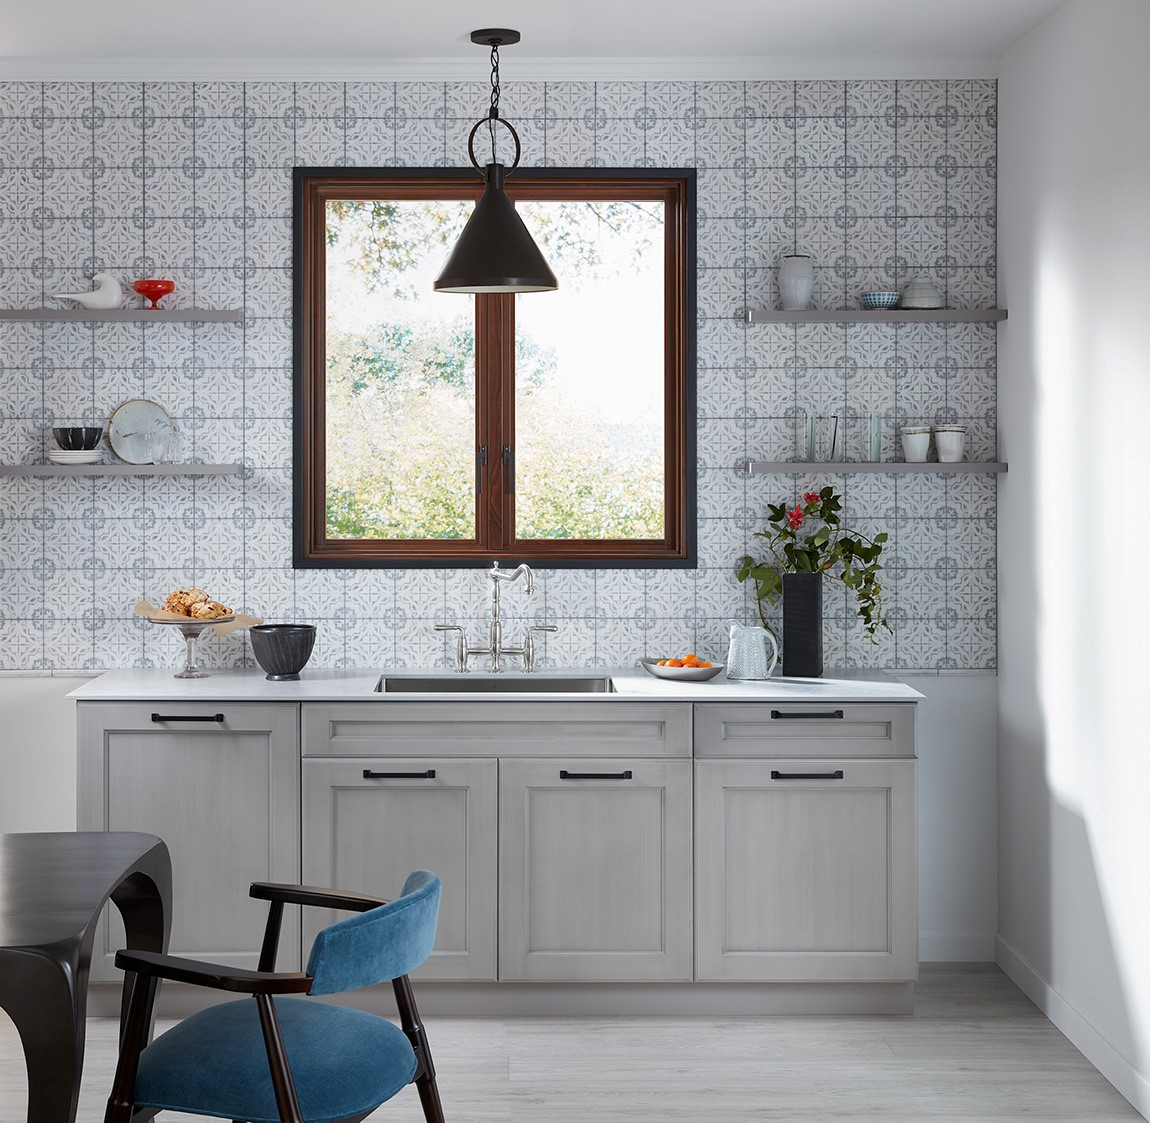 kitchen sink and counter with patterned backsplash